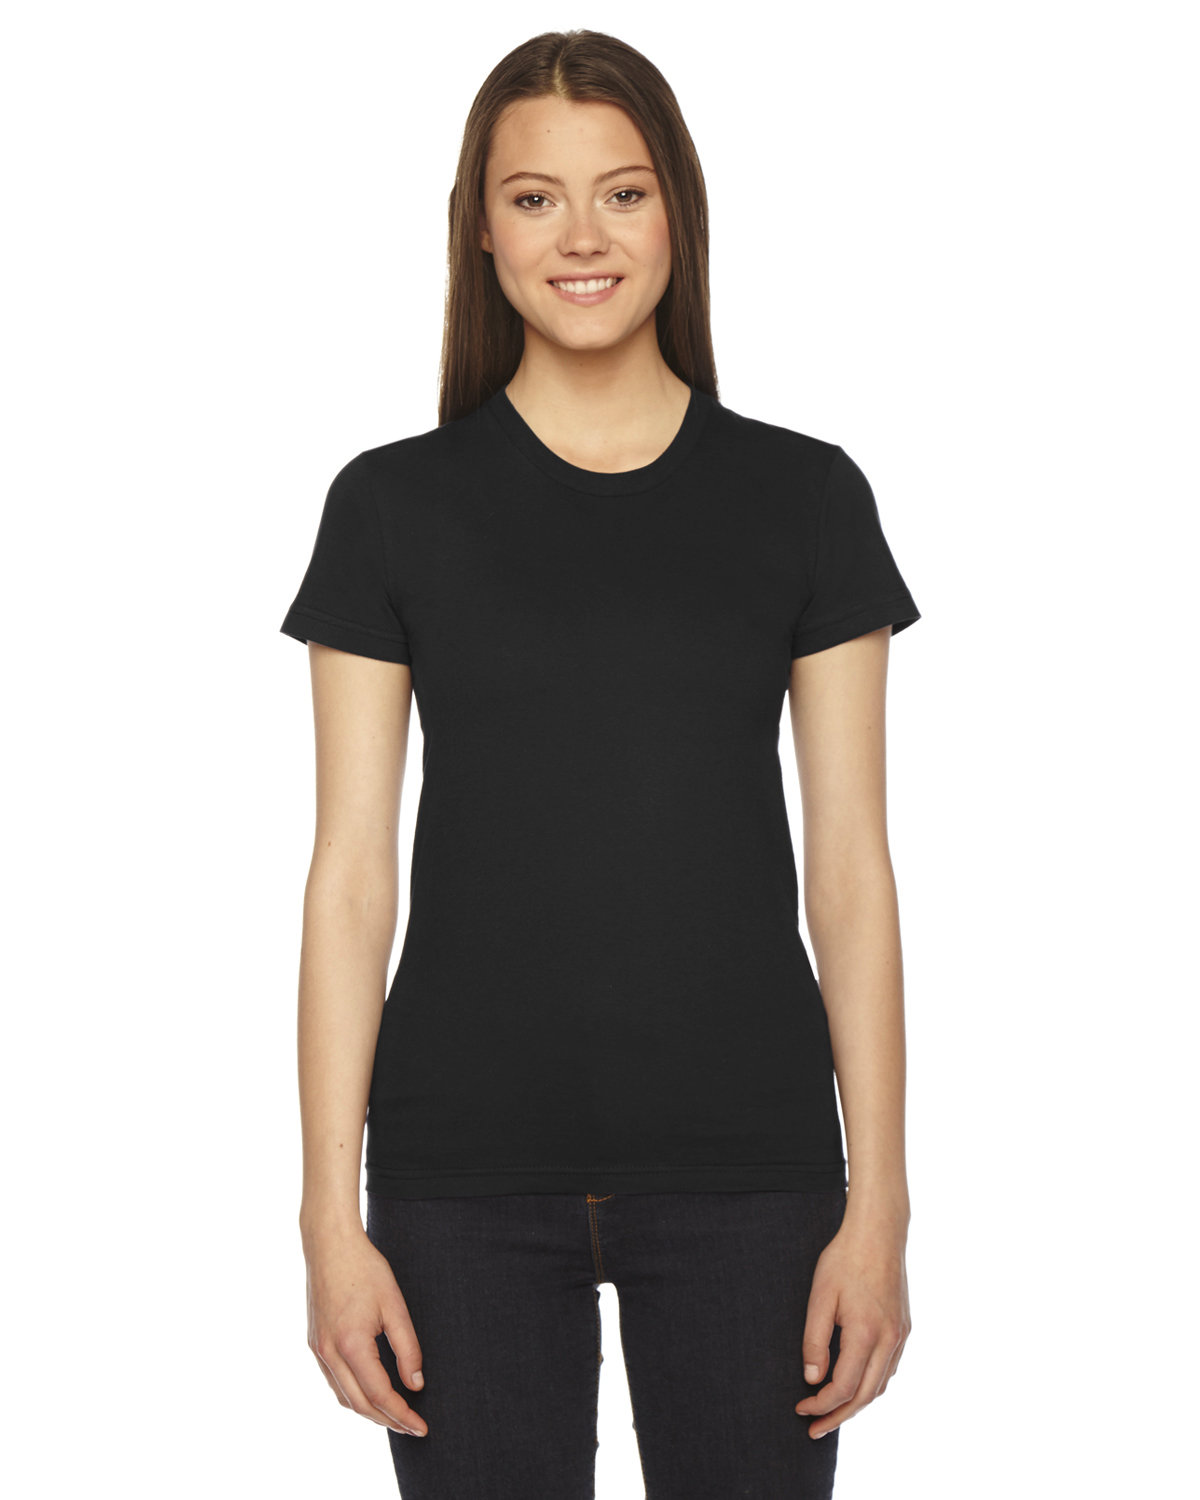 American Apparel Ladies' Fine Jersey Short-Sleeve T-Shirt BLACK